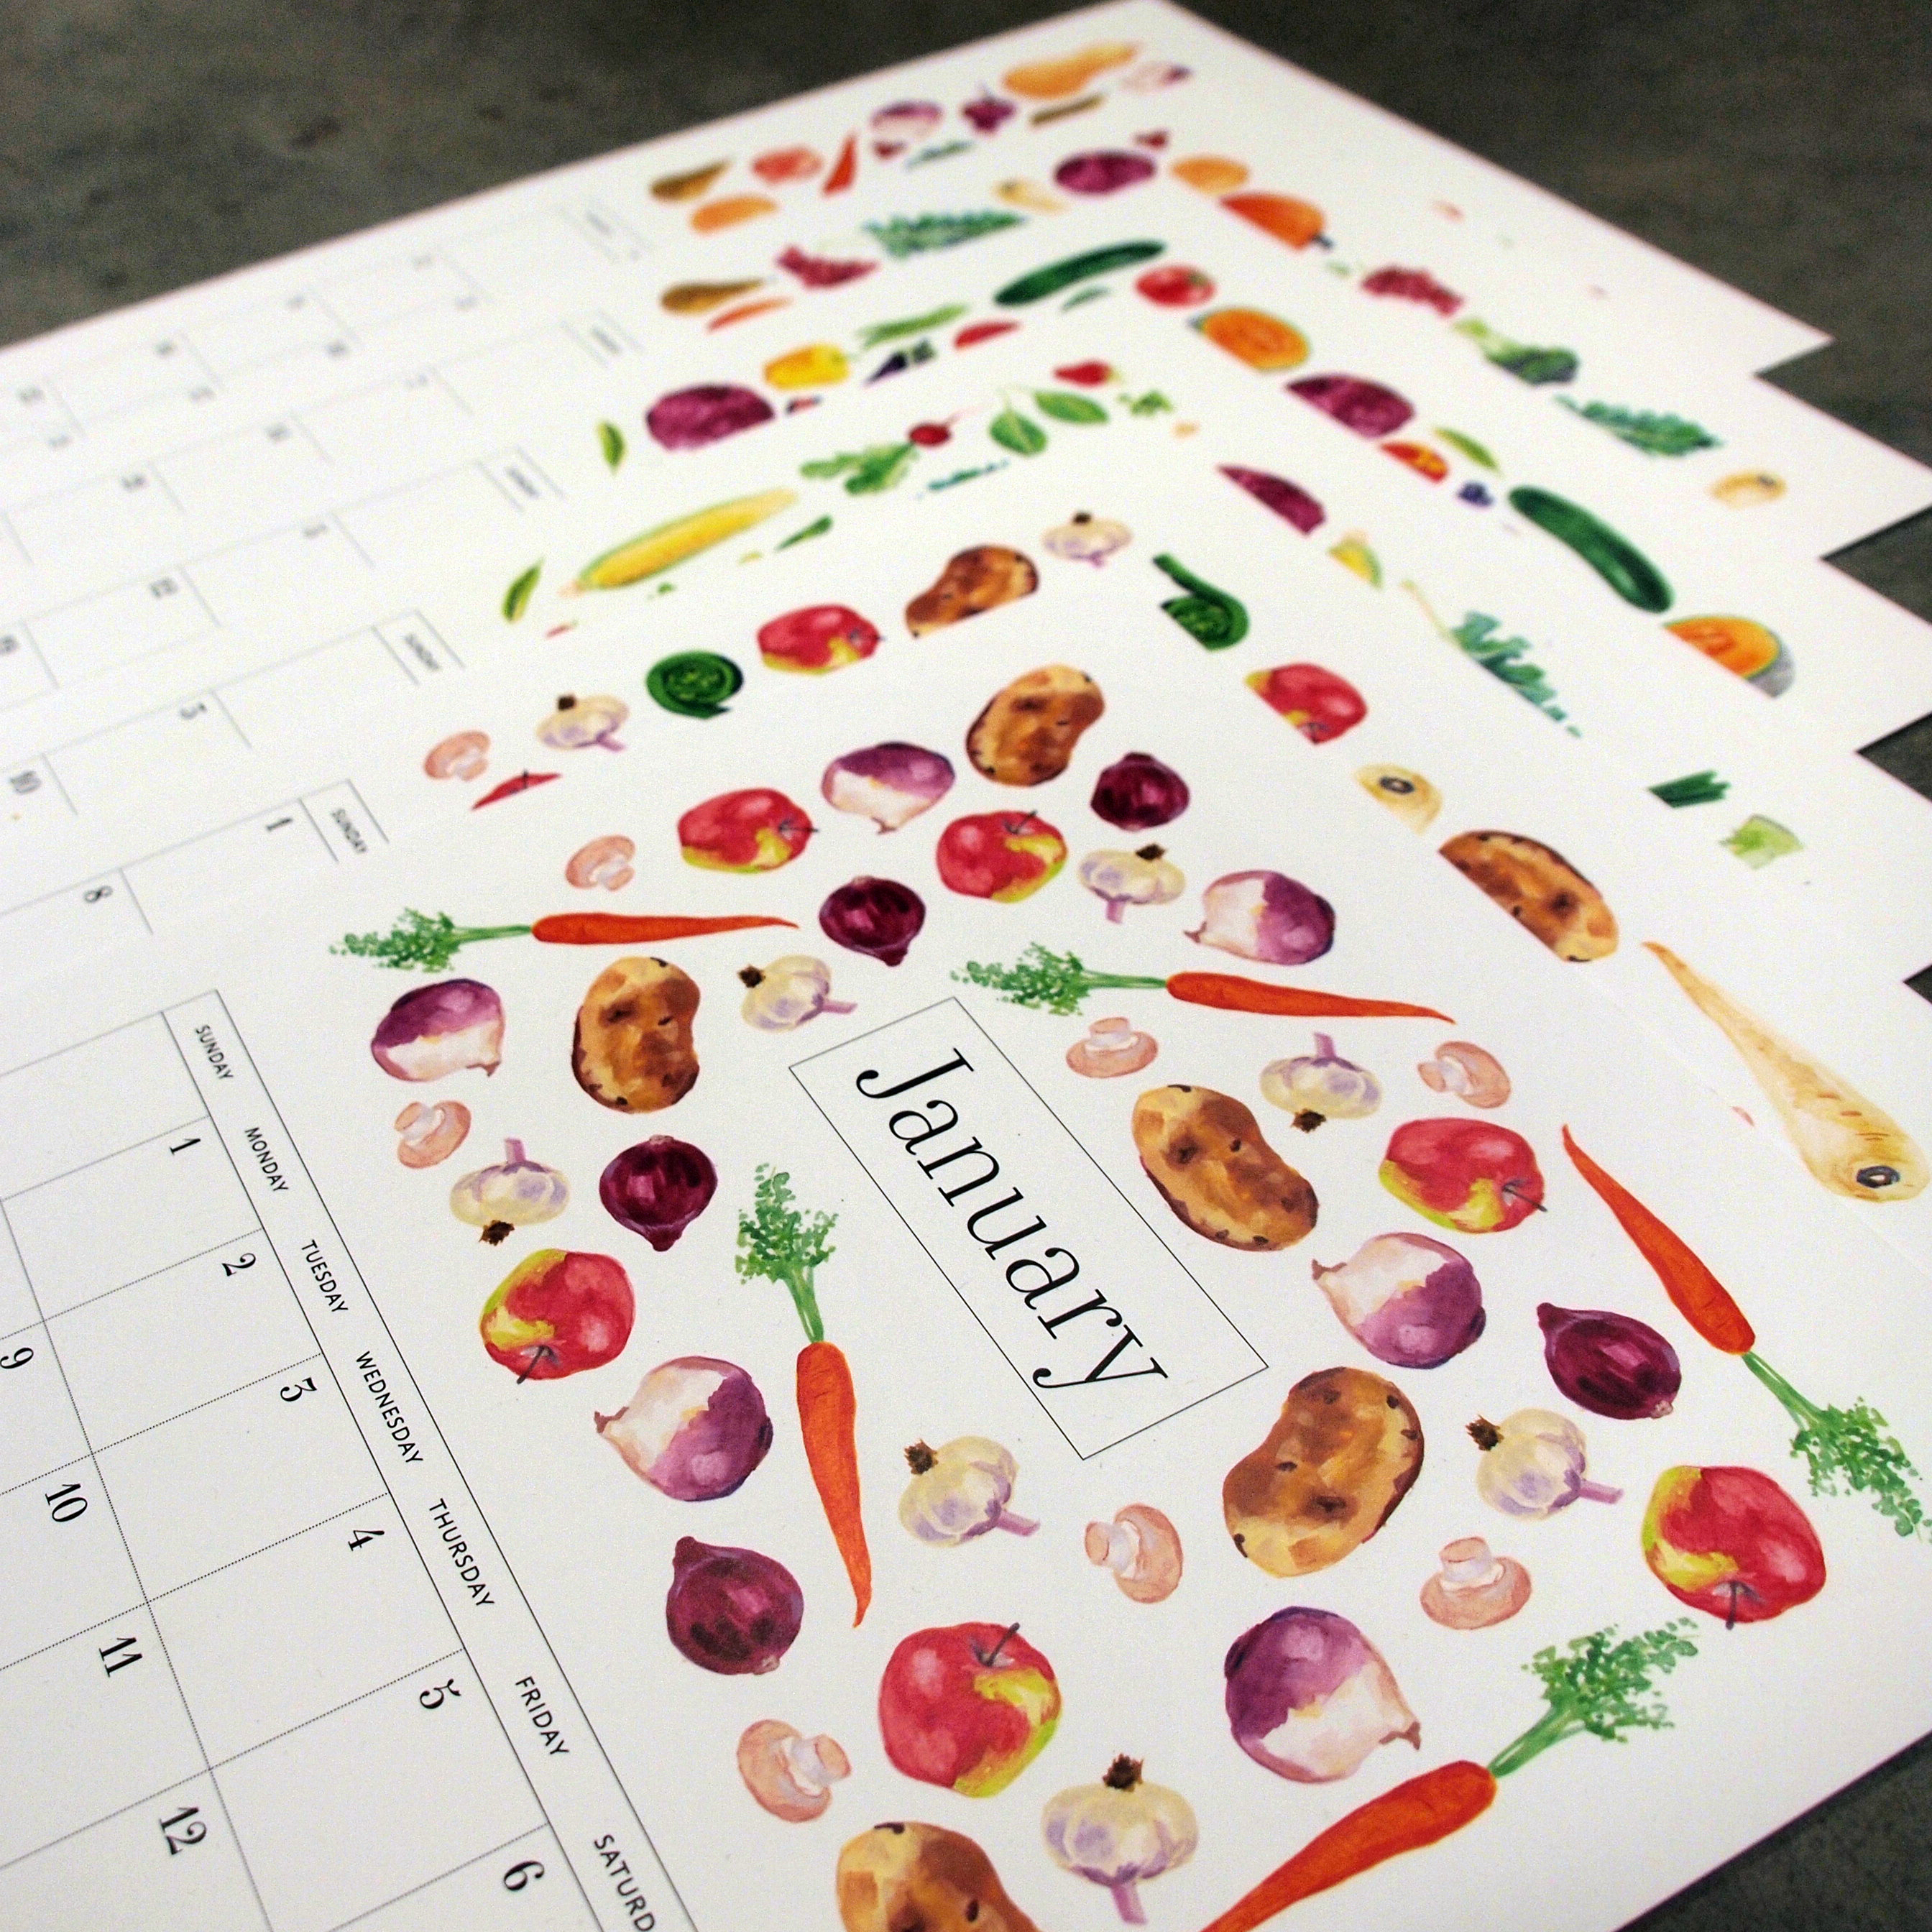 Vegetable Calendar thumbnail image